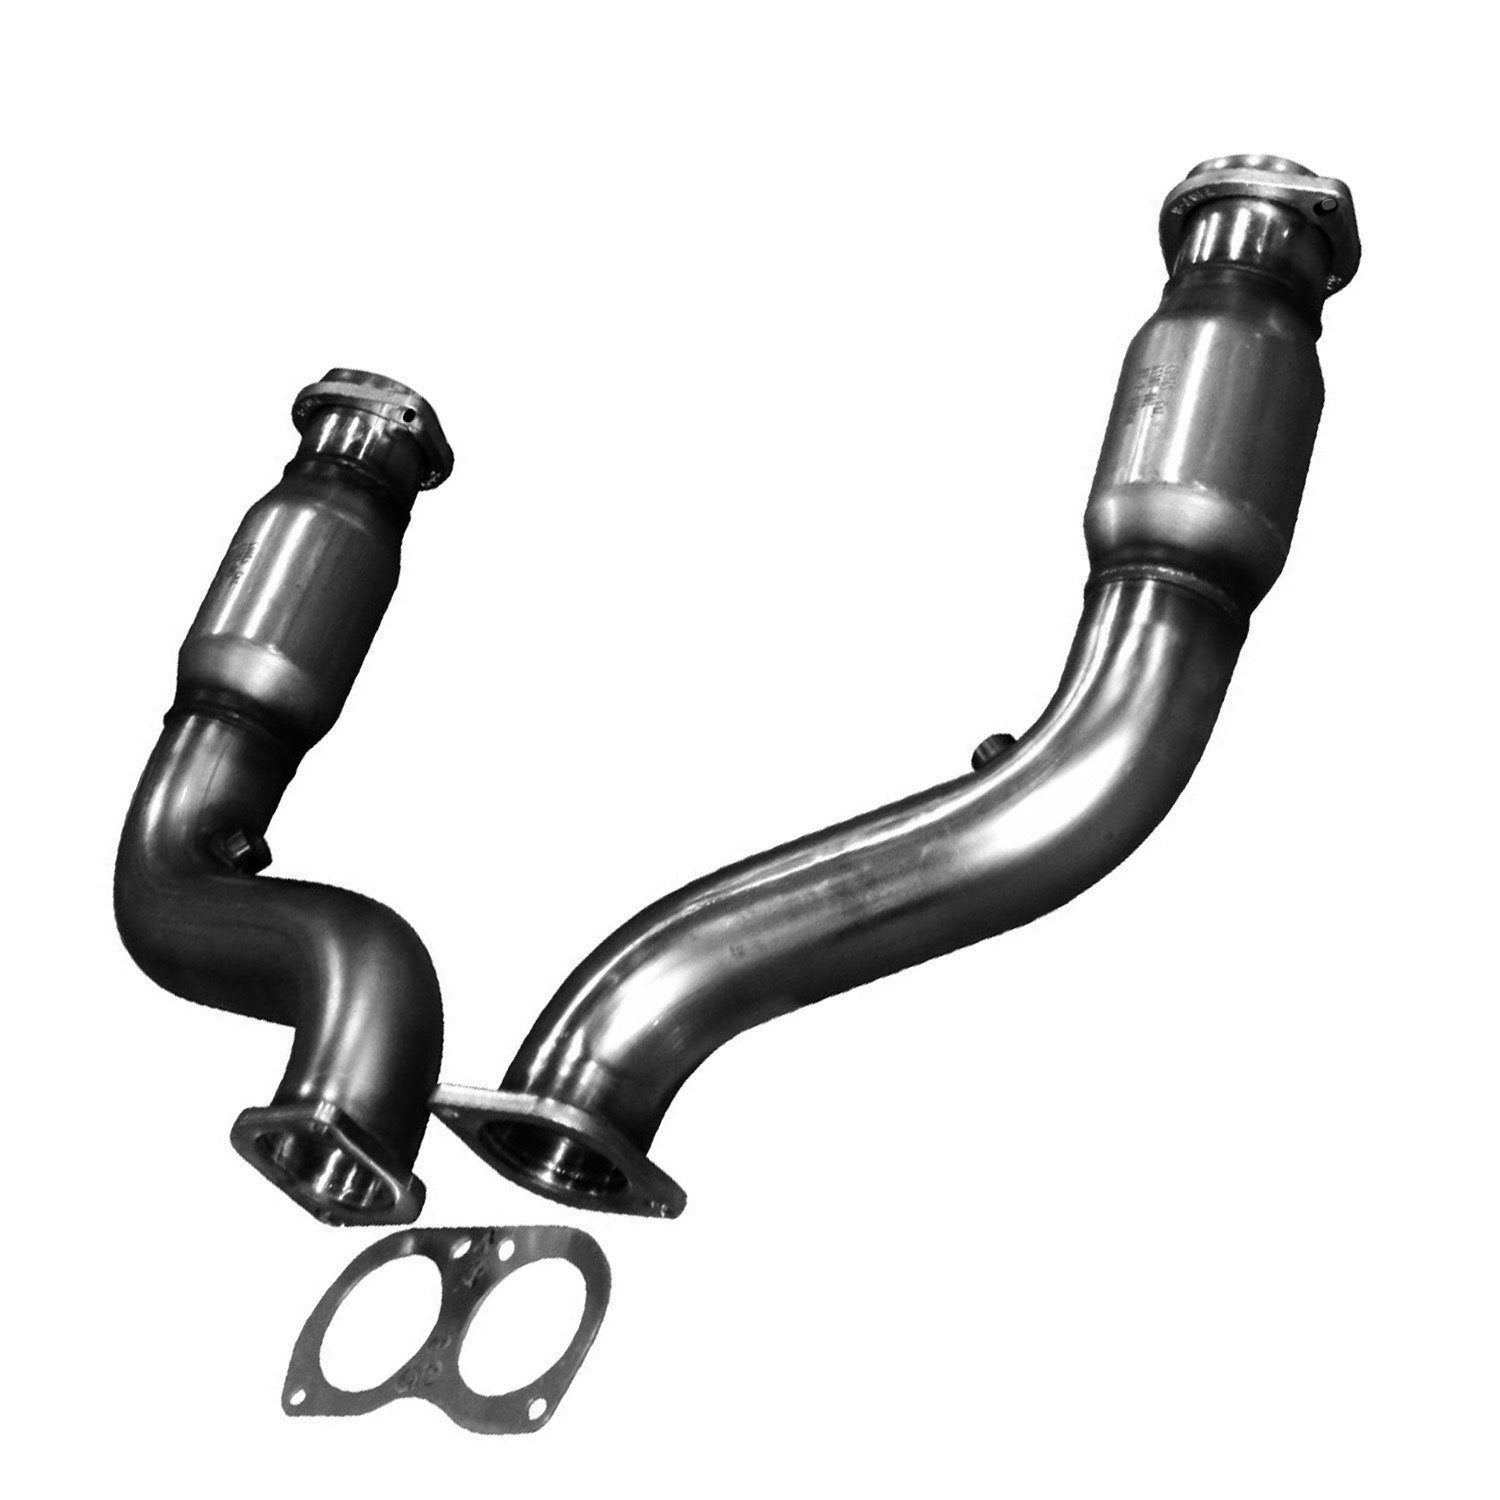 Kooks headers 24123200 kooks catted connection pipes pontiac gto kooks headers 24123200 kooks catted connection pipes pontiac gto 60l ls2 2005 2006 publicscrutiny Images